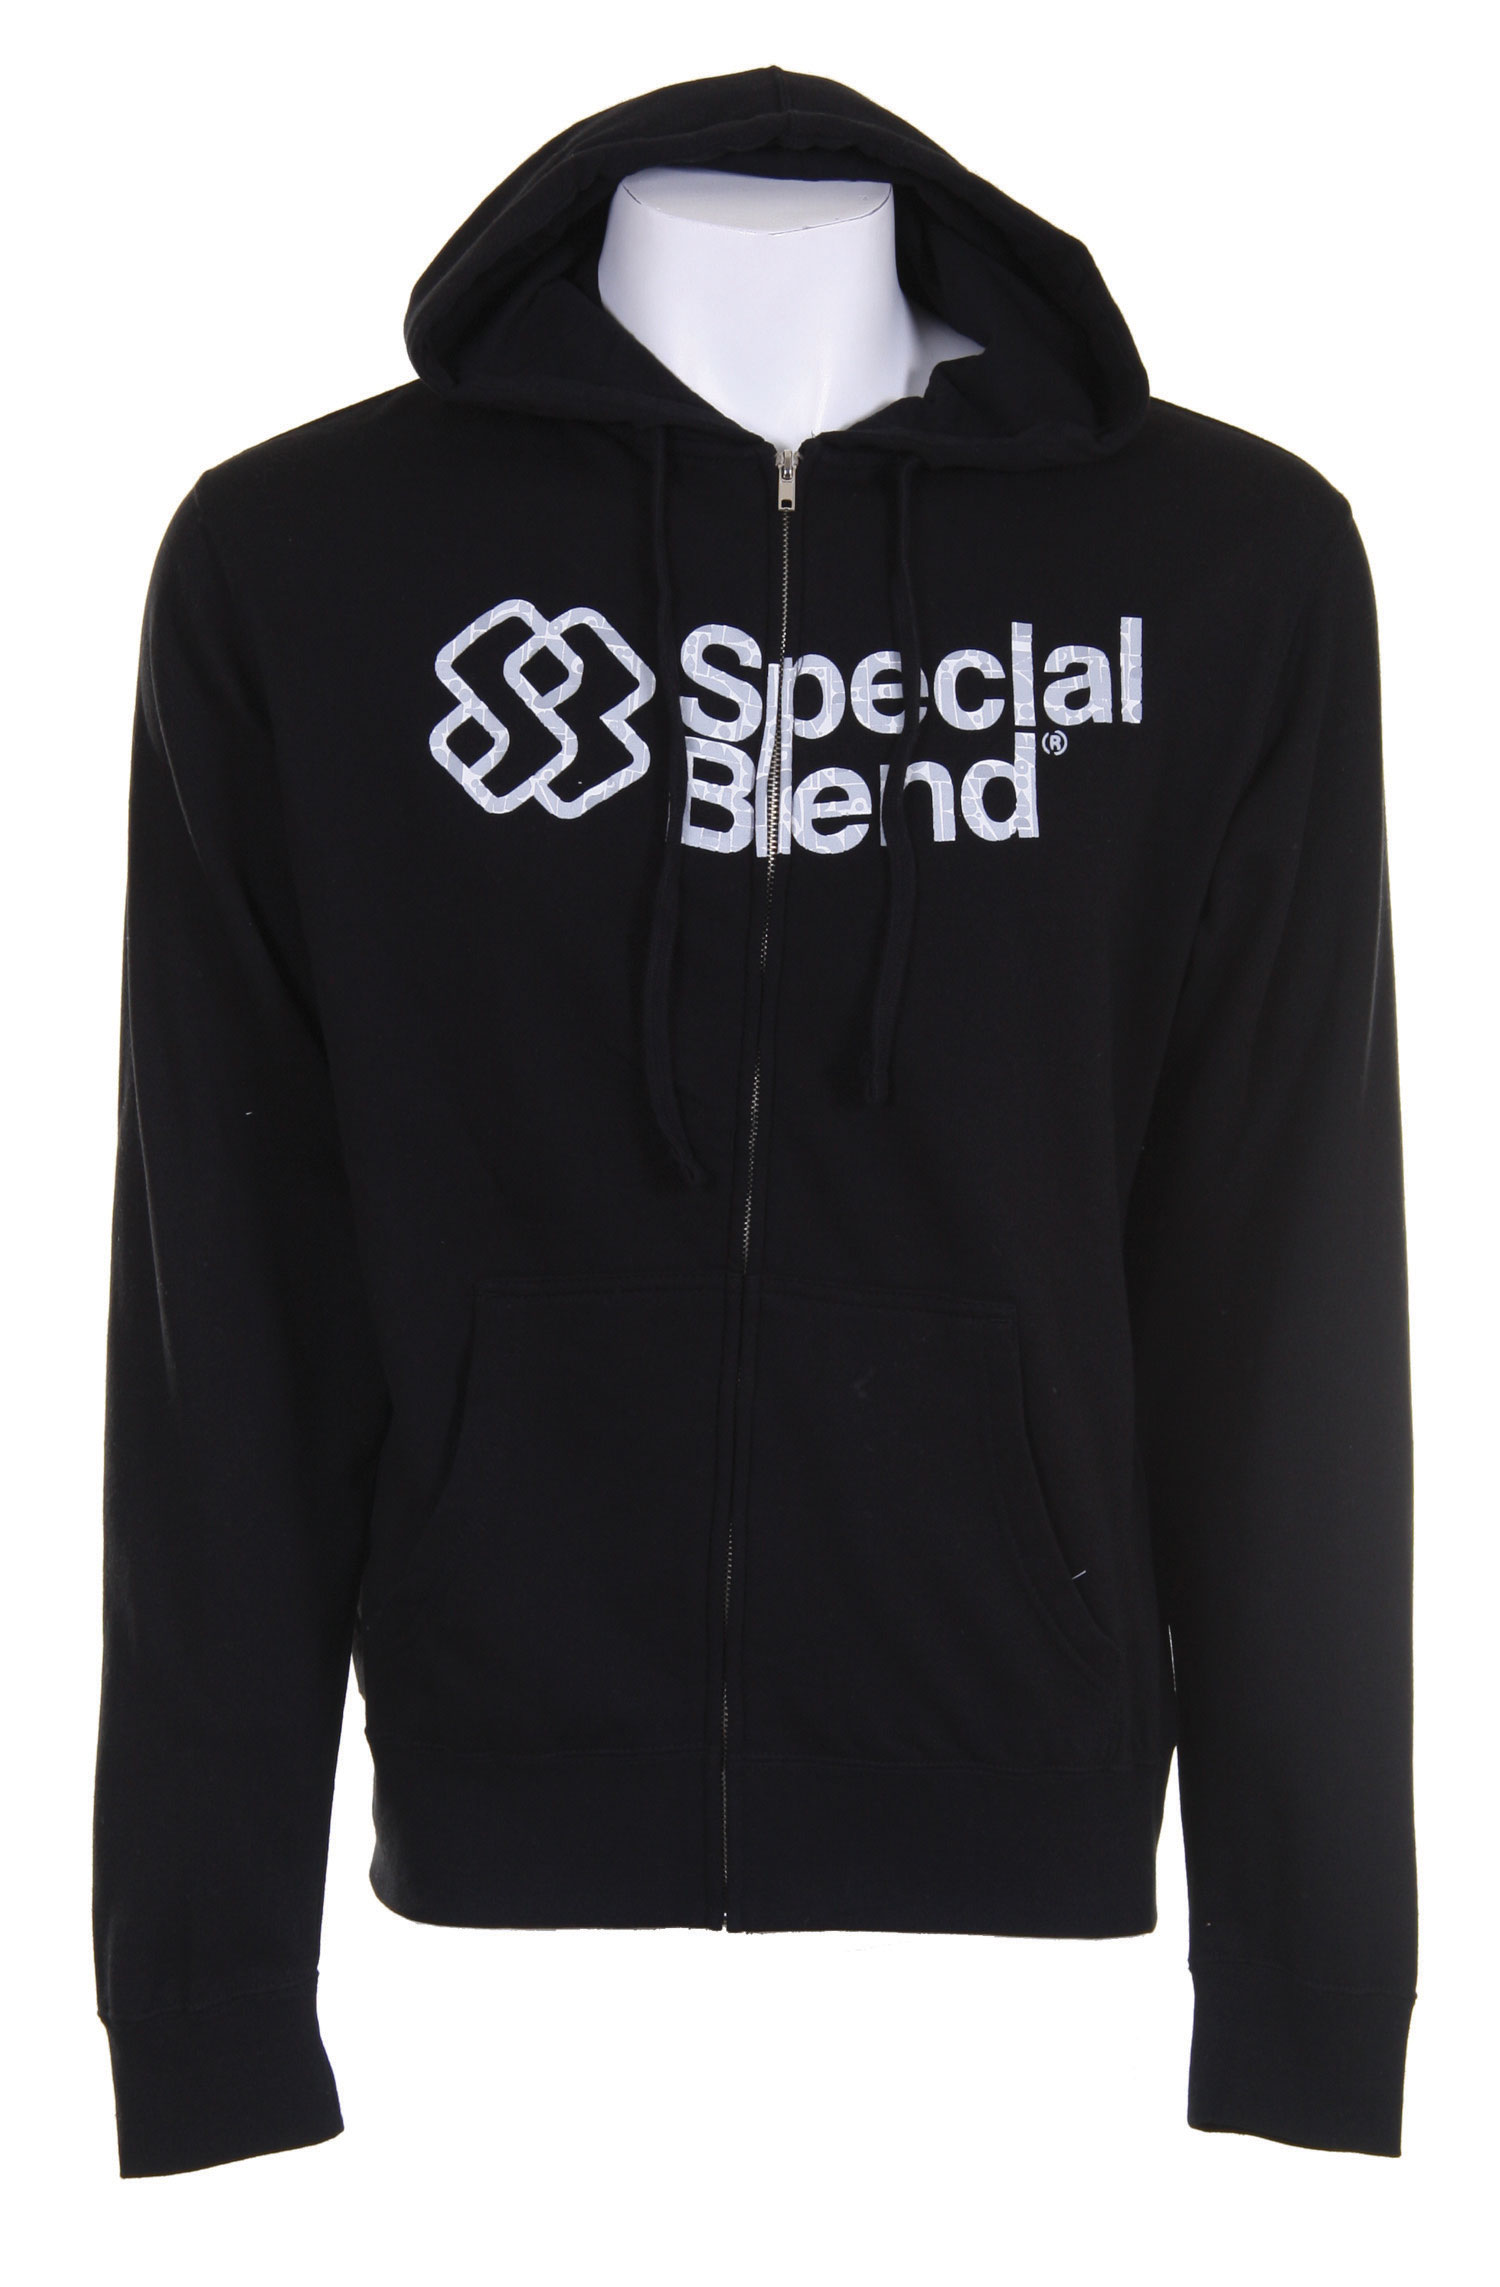 Snowboard This Special Blend Struggle Wordmark Full Zip Hoodie could easily become your favorite hoodie ever in the history of hoodies. The slim fitting design is made out of 80% cotton and 20% polyester. It features a screen print on the hood and another screen print on the chest with the Special Blend name and logo. Put this on after an epic day of snowboarding and cut the chill while still looking like you're some kind of big deal.Key Features of The Special Blend Struggle Wordmark Full Zip Hoodie: 80% Cotton / 20% Polyester Slim Fit Chest and Hood Screen Print - $20.96